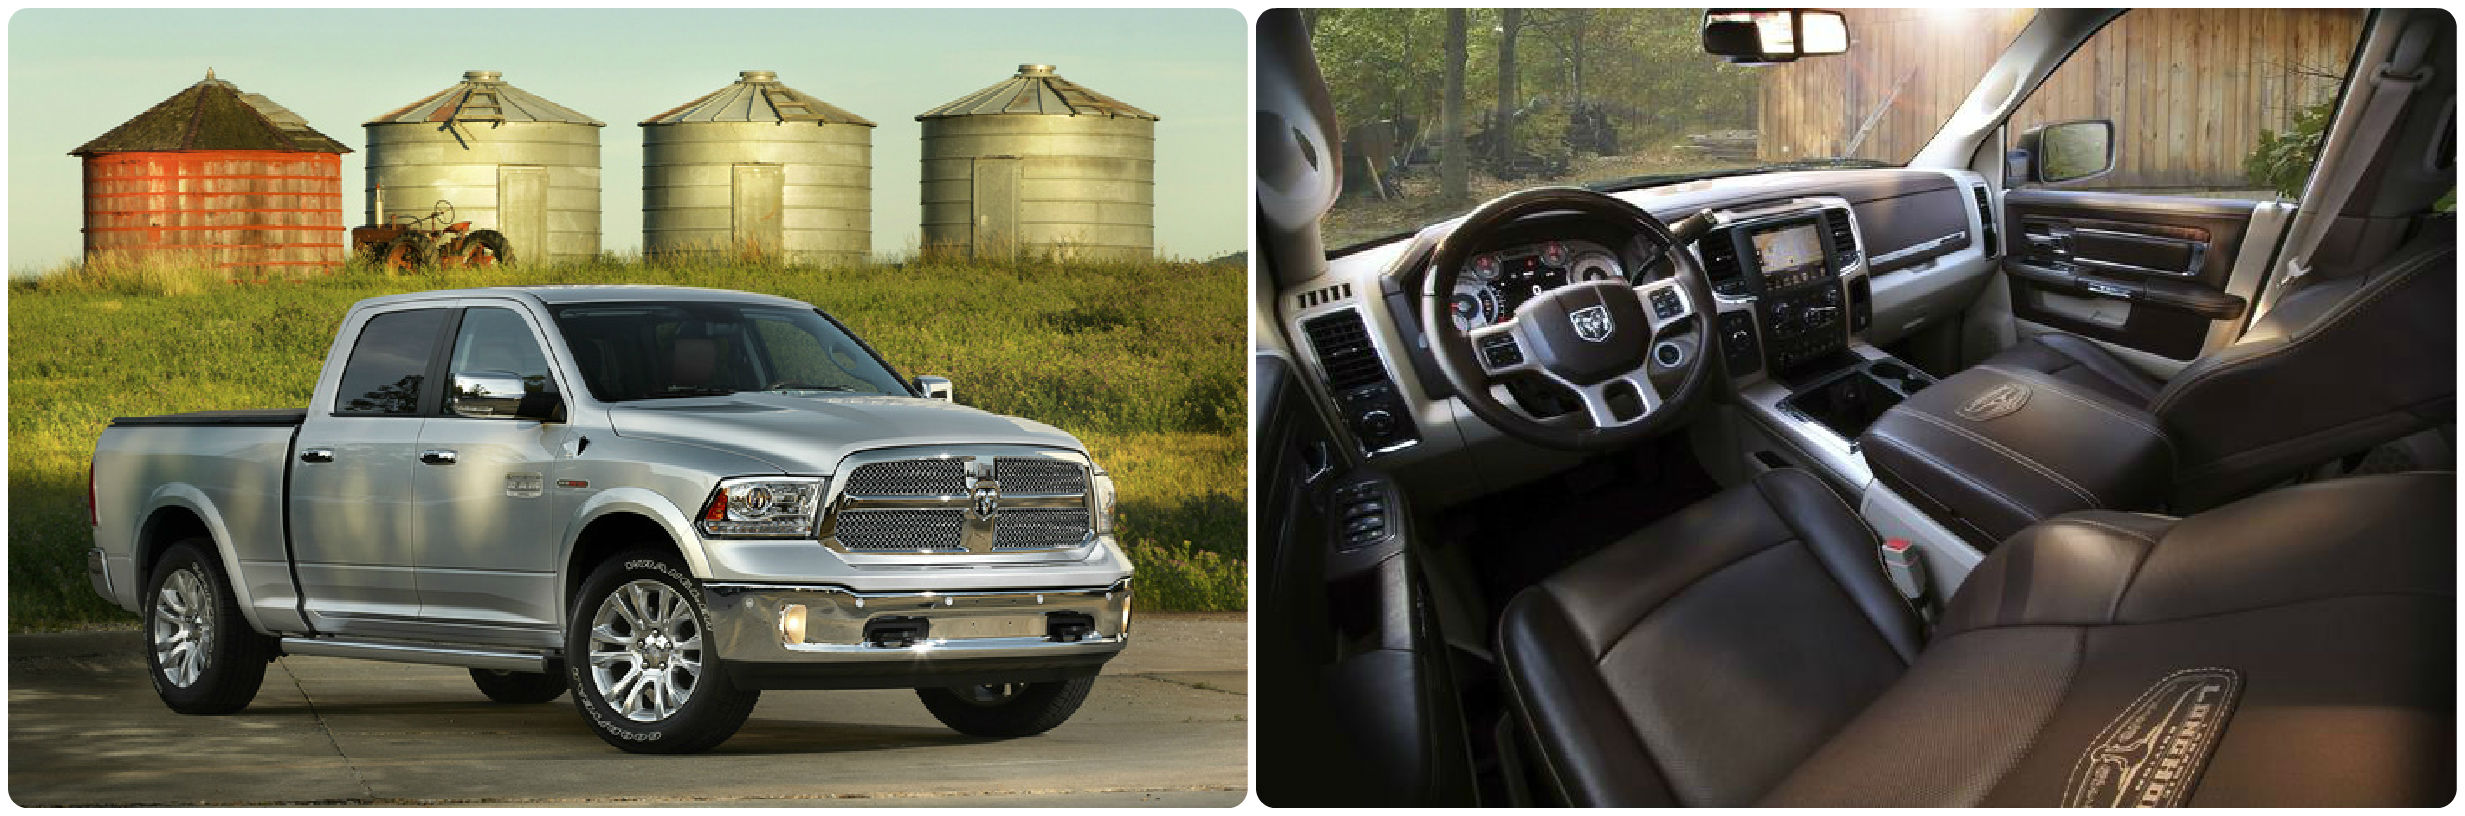 Ram 1500 interior and exterior pictured in Ohio